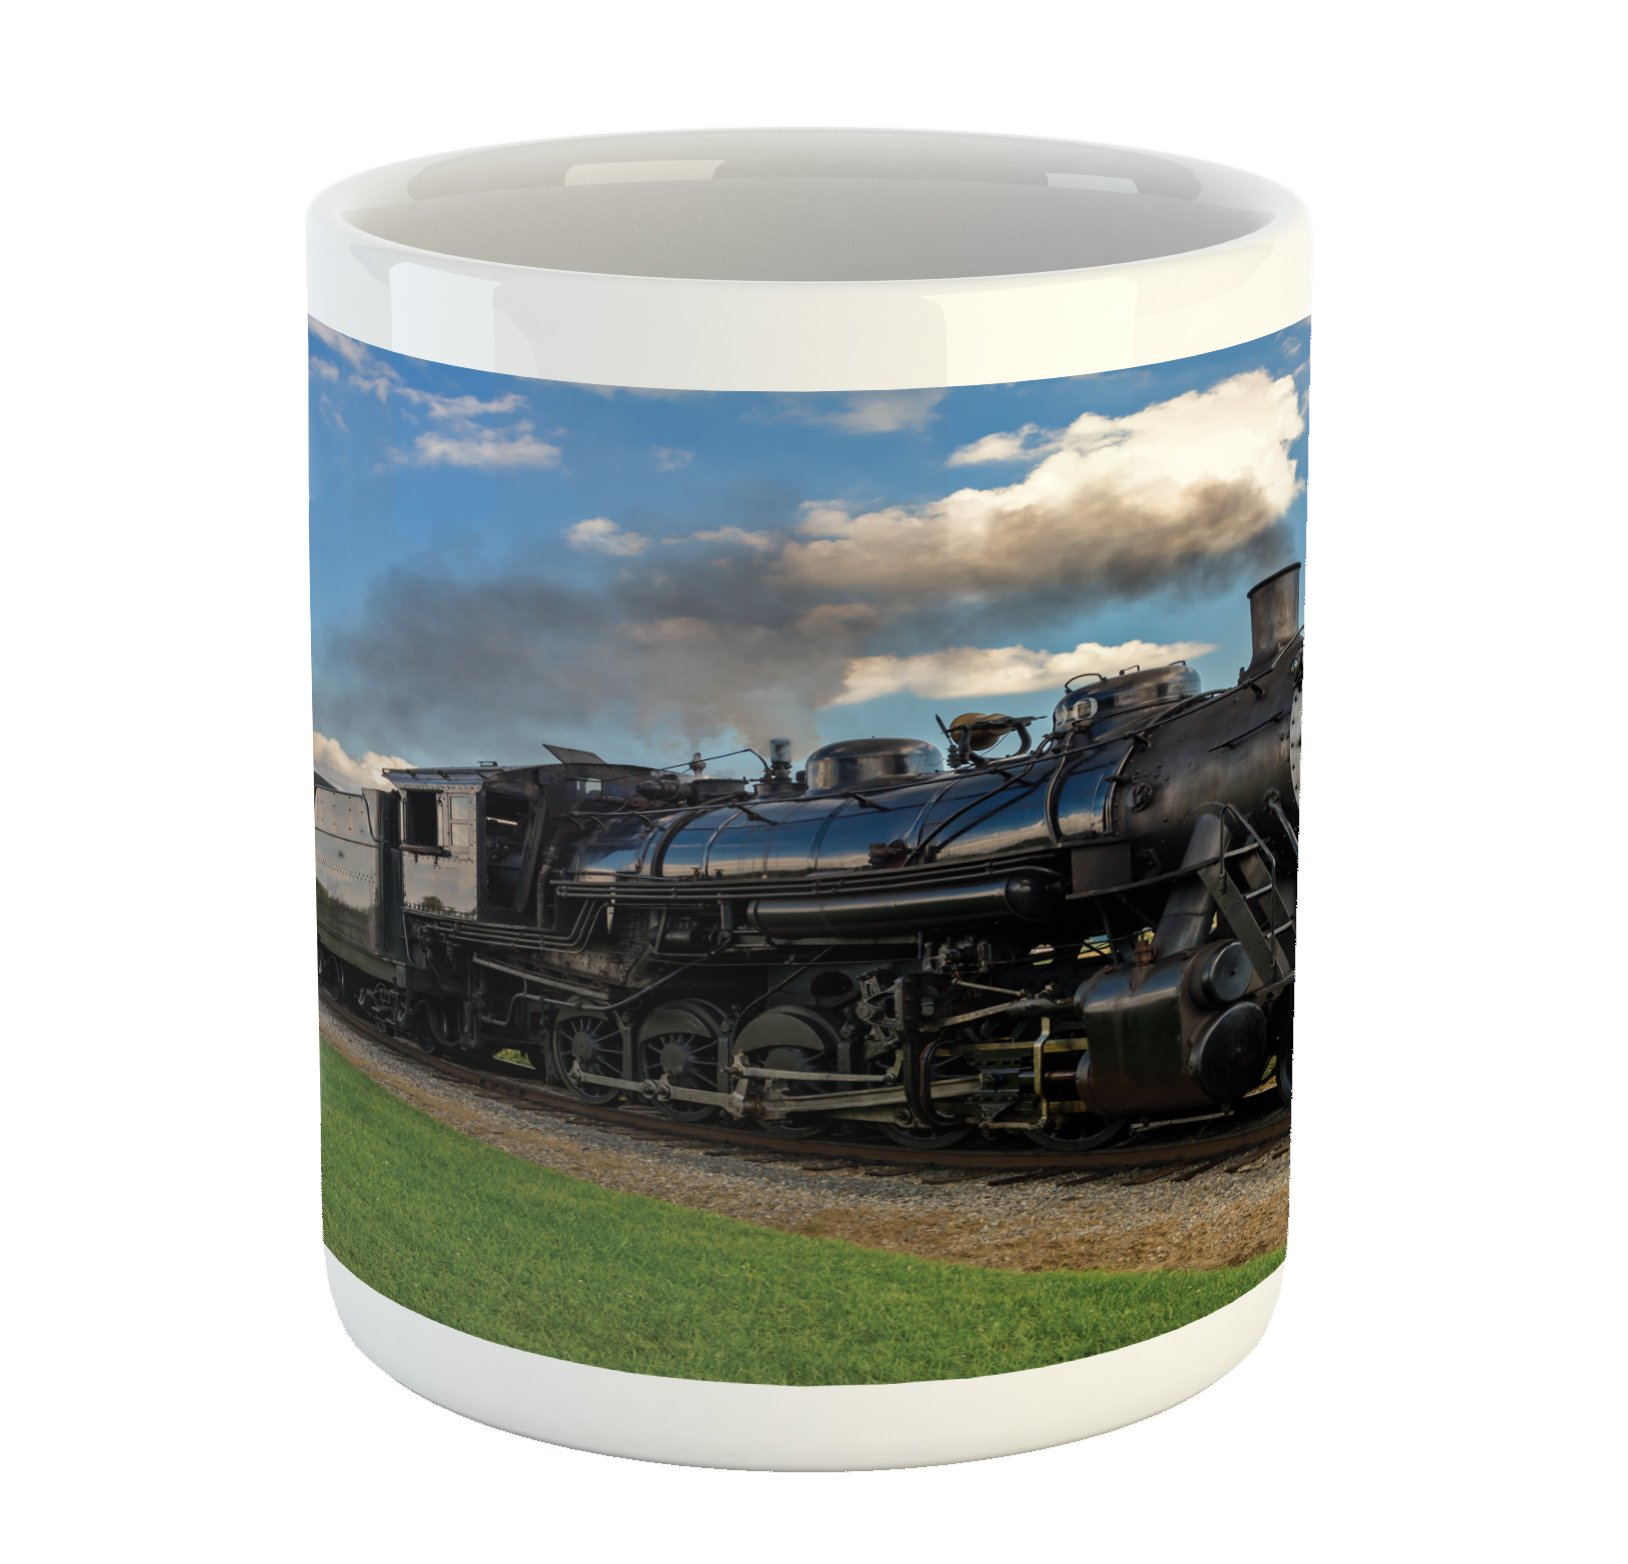 Ambesonne Steam Engine Mug, Vintage Locomotive in Countryside Scenery Green Grass Puff Train Picture, Printed Ceramic Coffee Mug Water Tea Drinks Cup, Blue Green Black